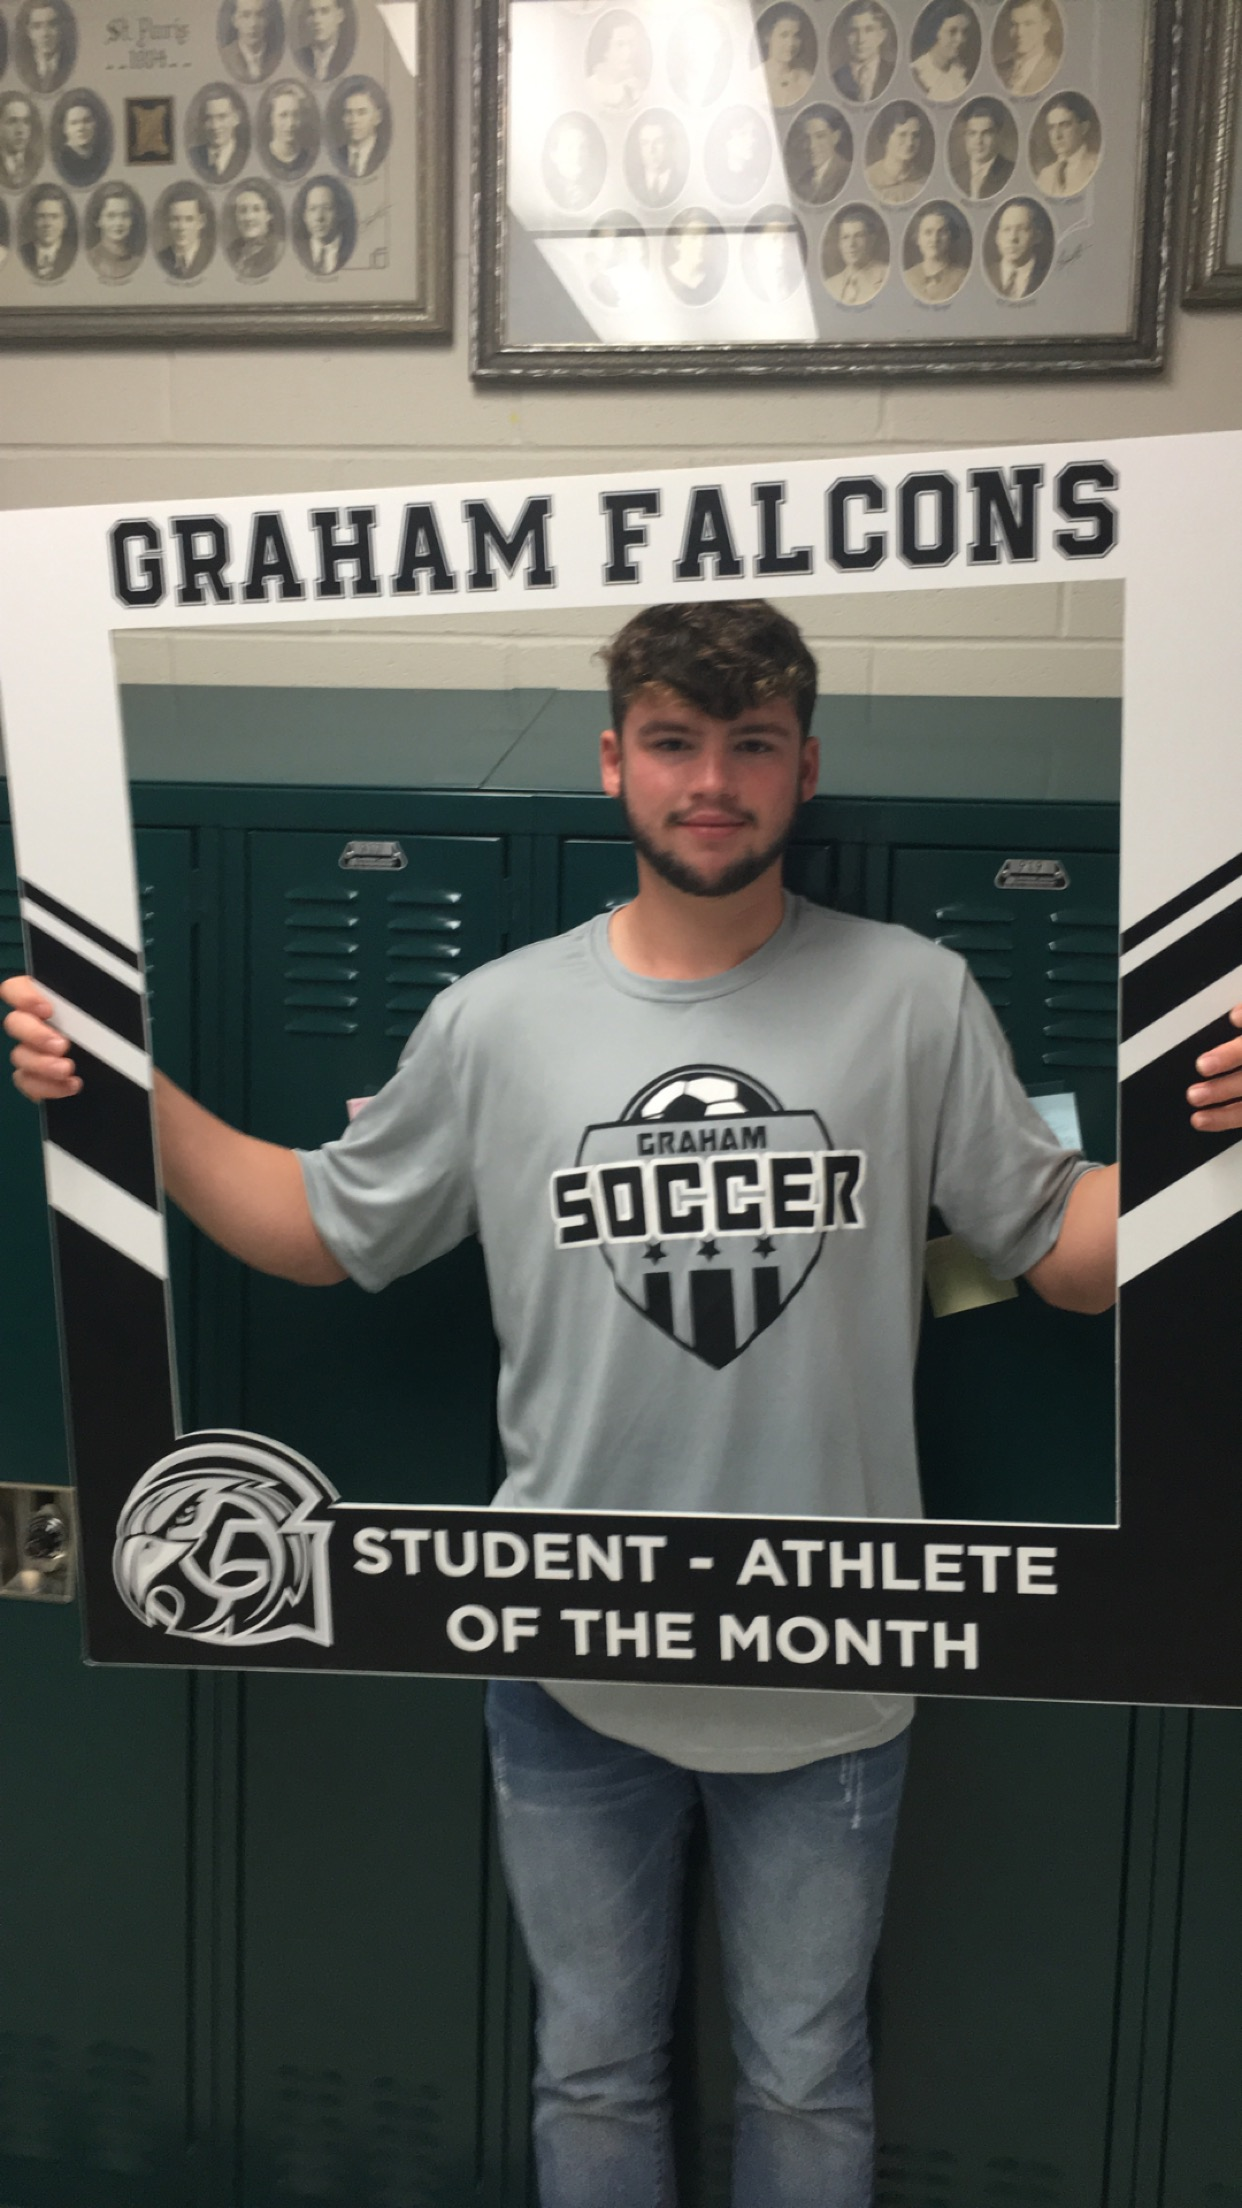 Congratulations to the October student-athlete of the month..Brady Oder!